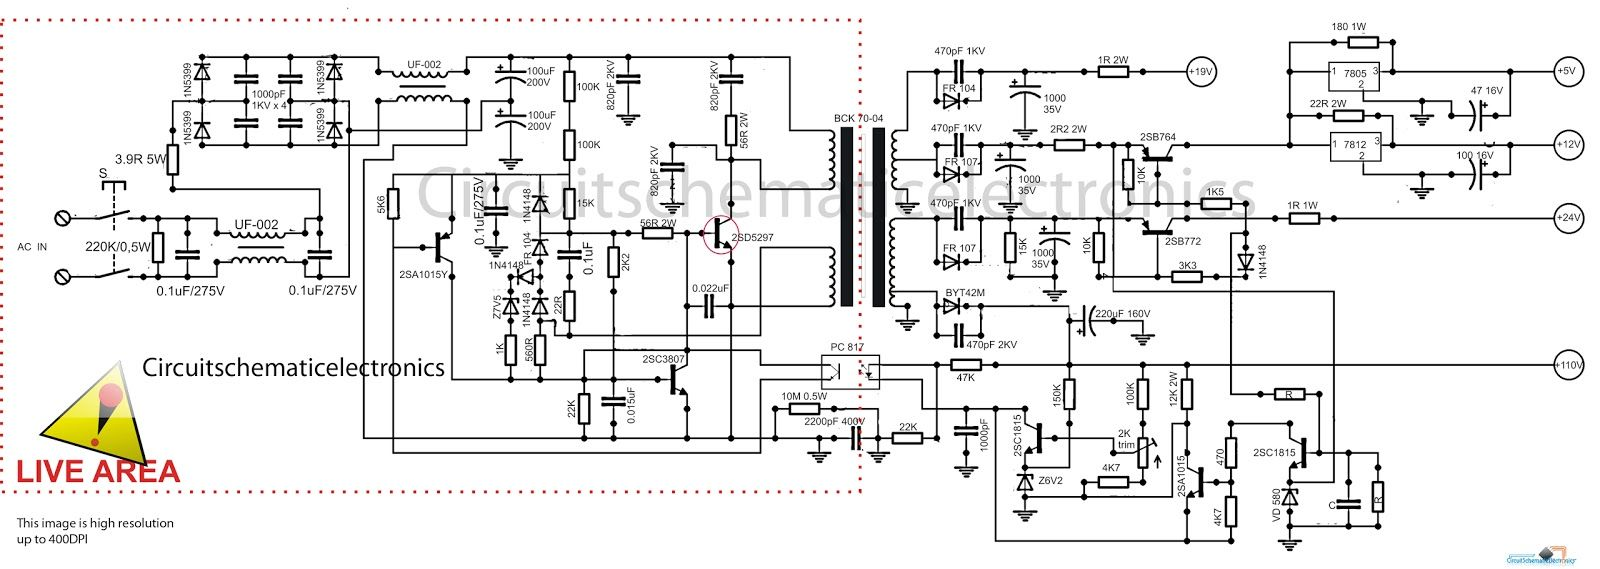 Switching power suplly for color television circuit | About ...